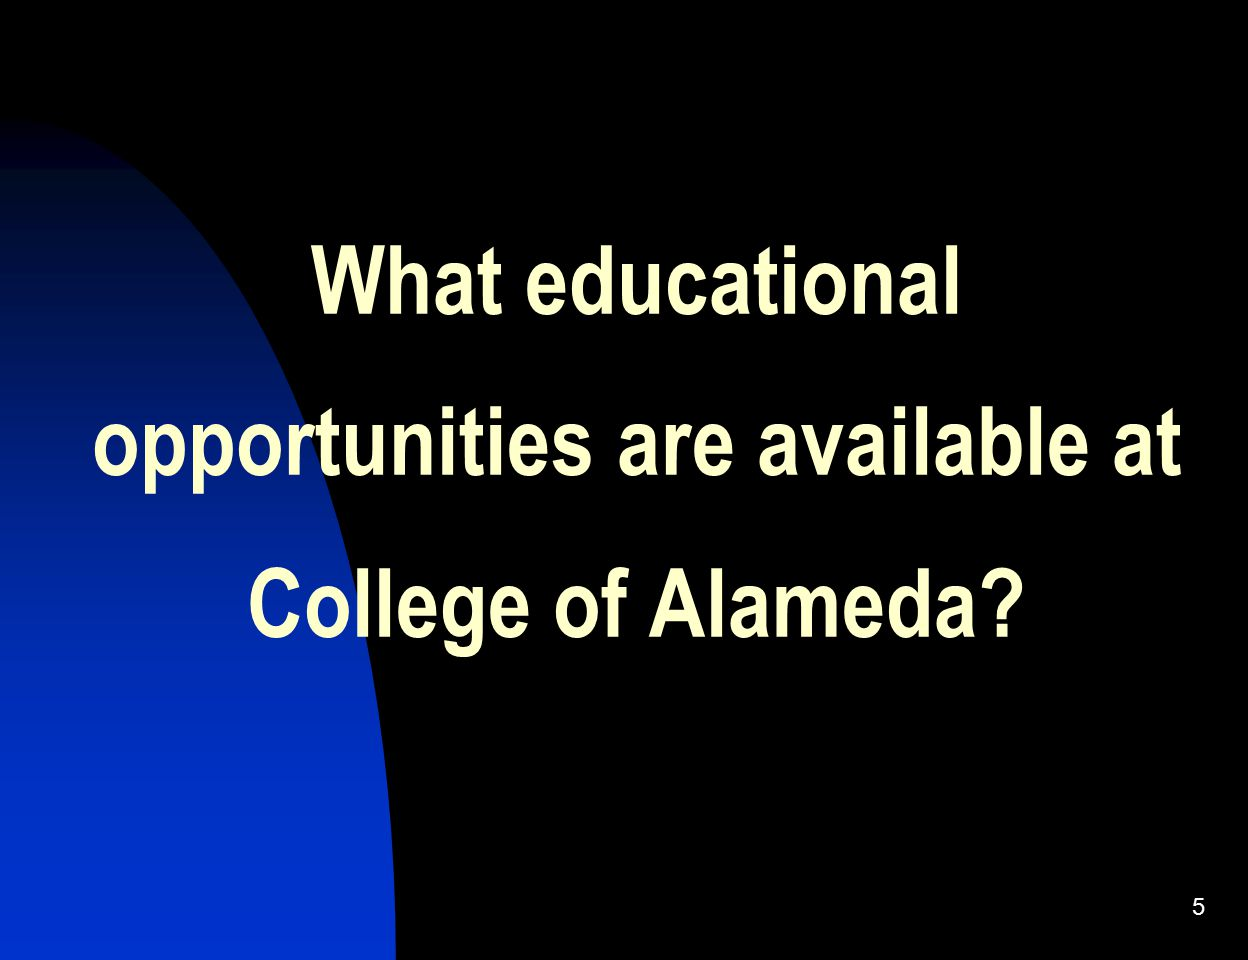 What educational opportunities are available at College of Alameda